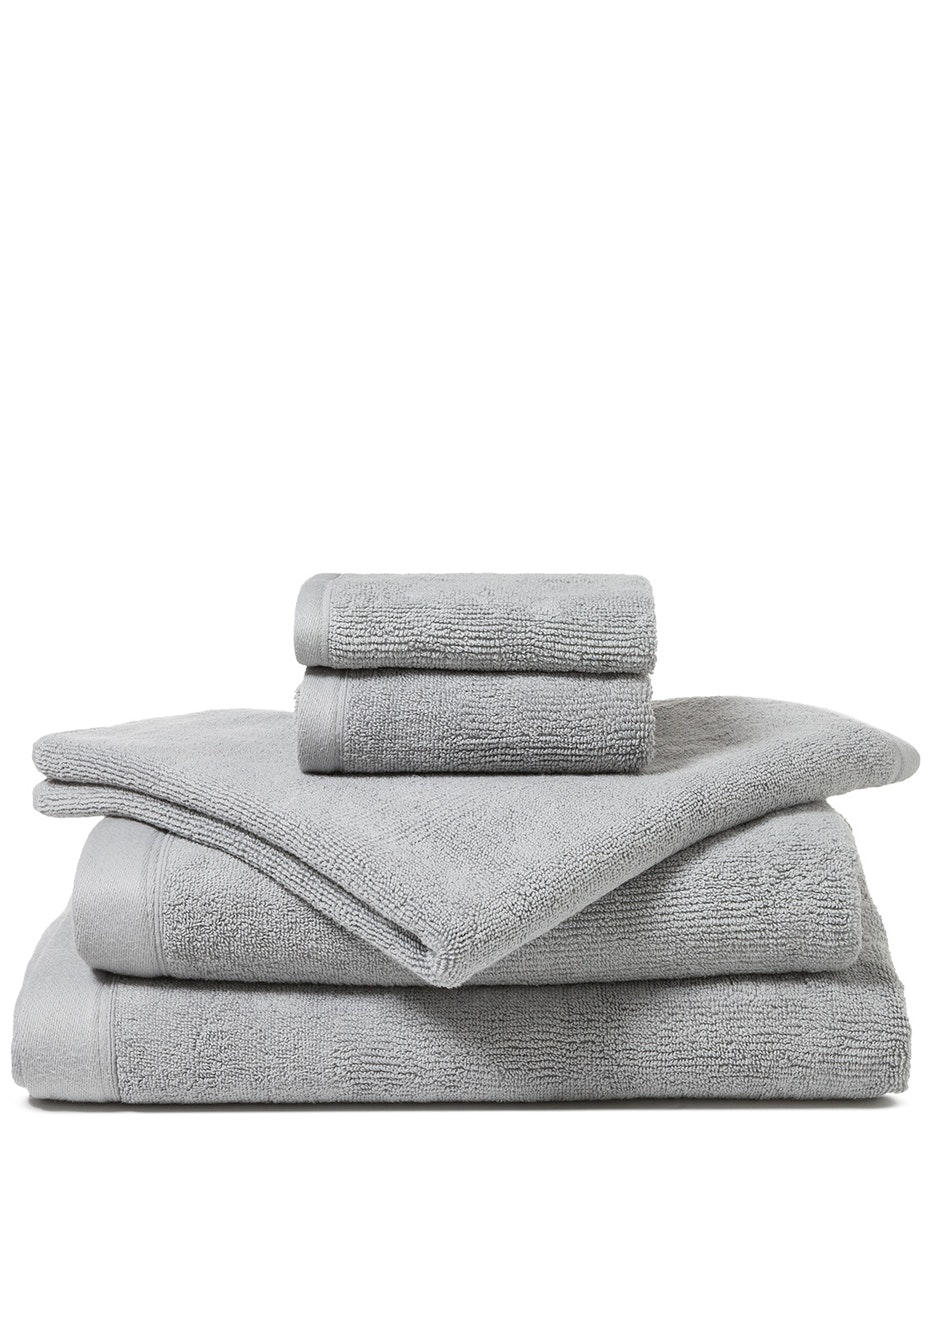 Canningvale - Corduroy Rib Bath Sheet Grey